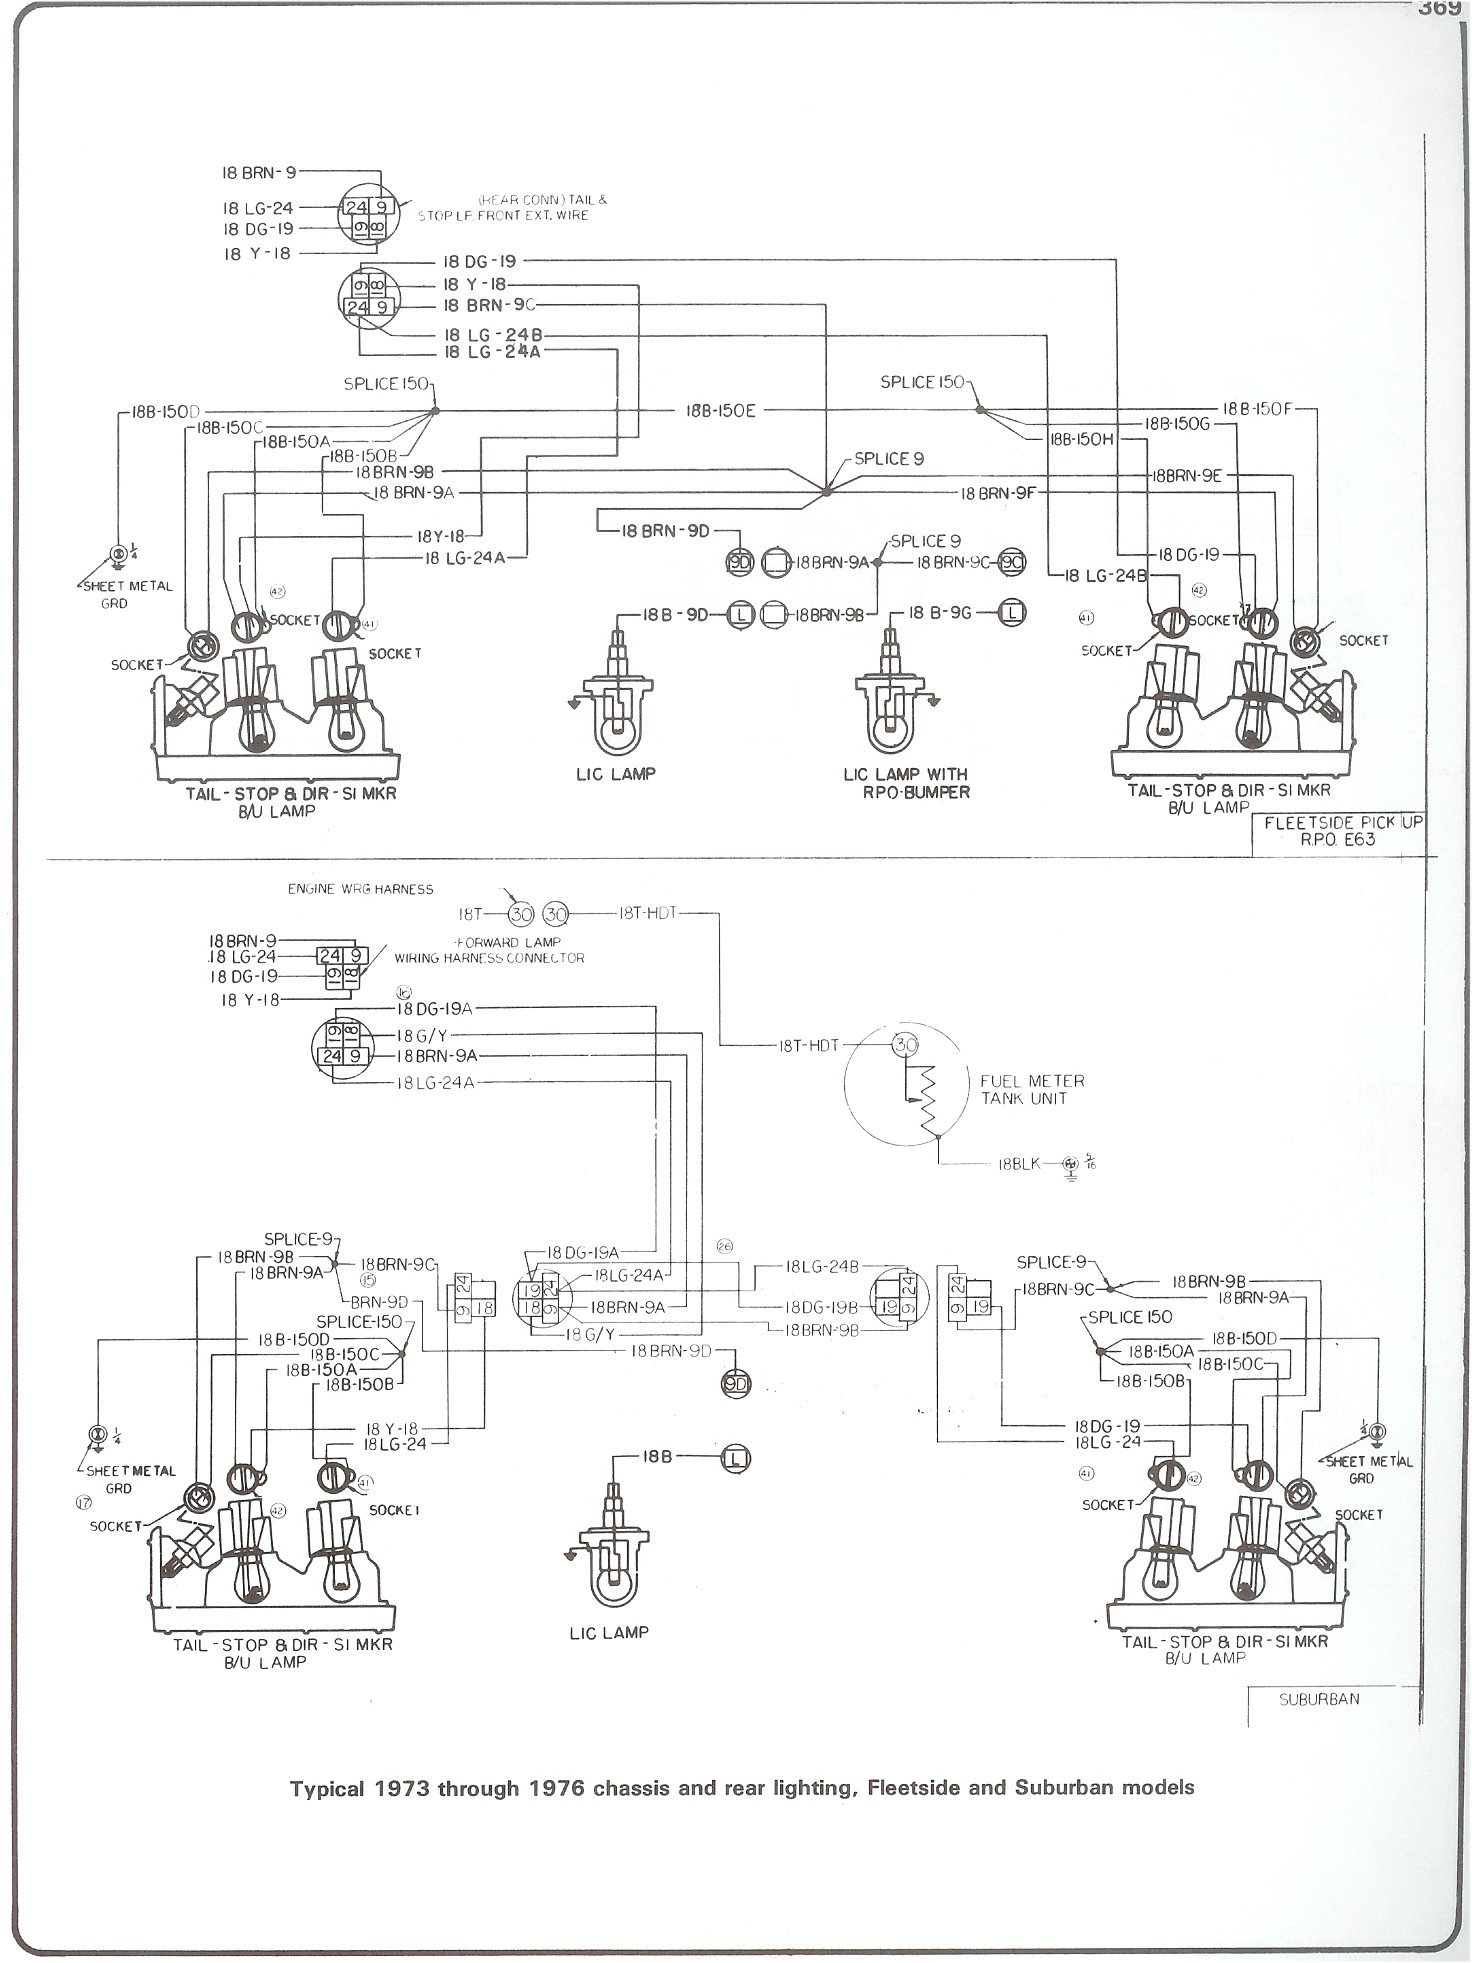 hight resolution of complete 73 87 wiring diagrams 1961 chevy truck wiring diagram 73 76 chassis rear lighting